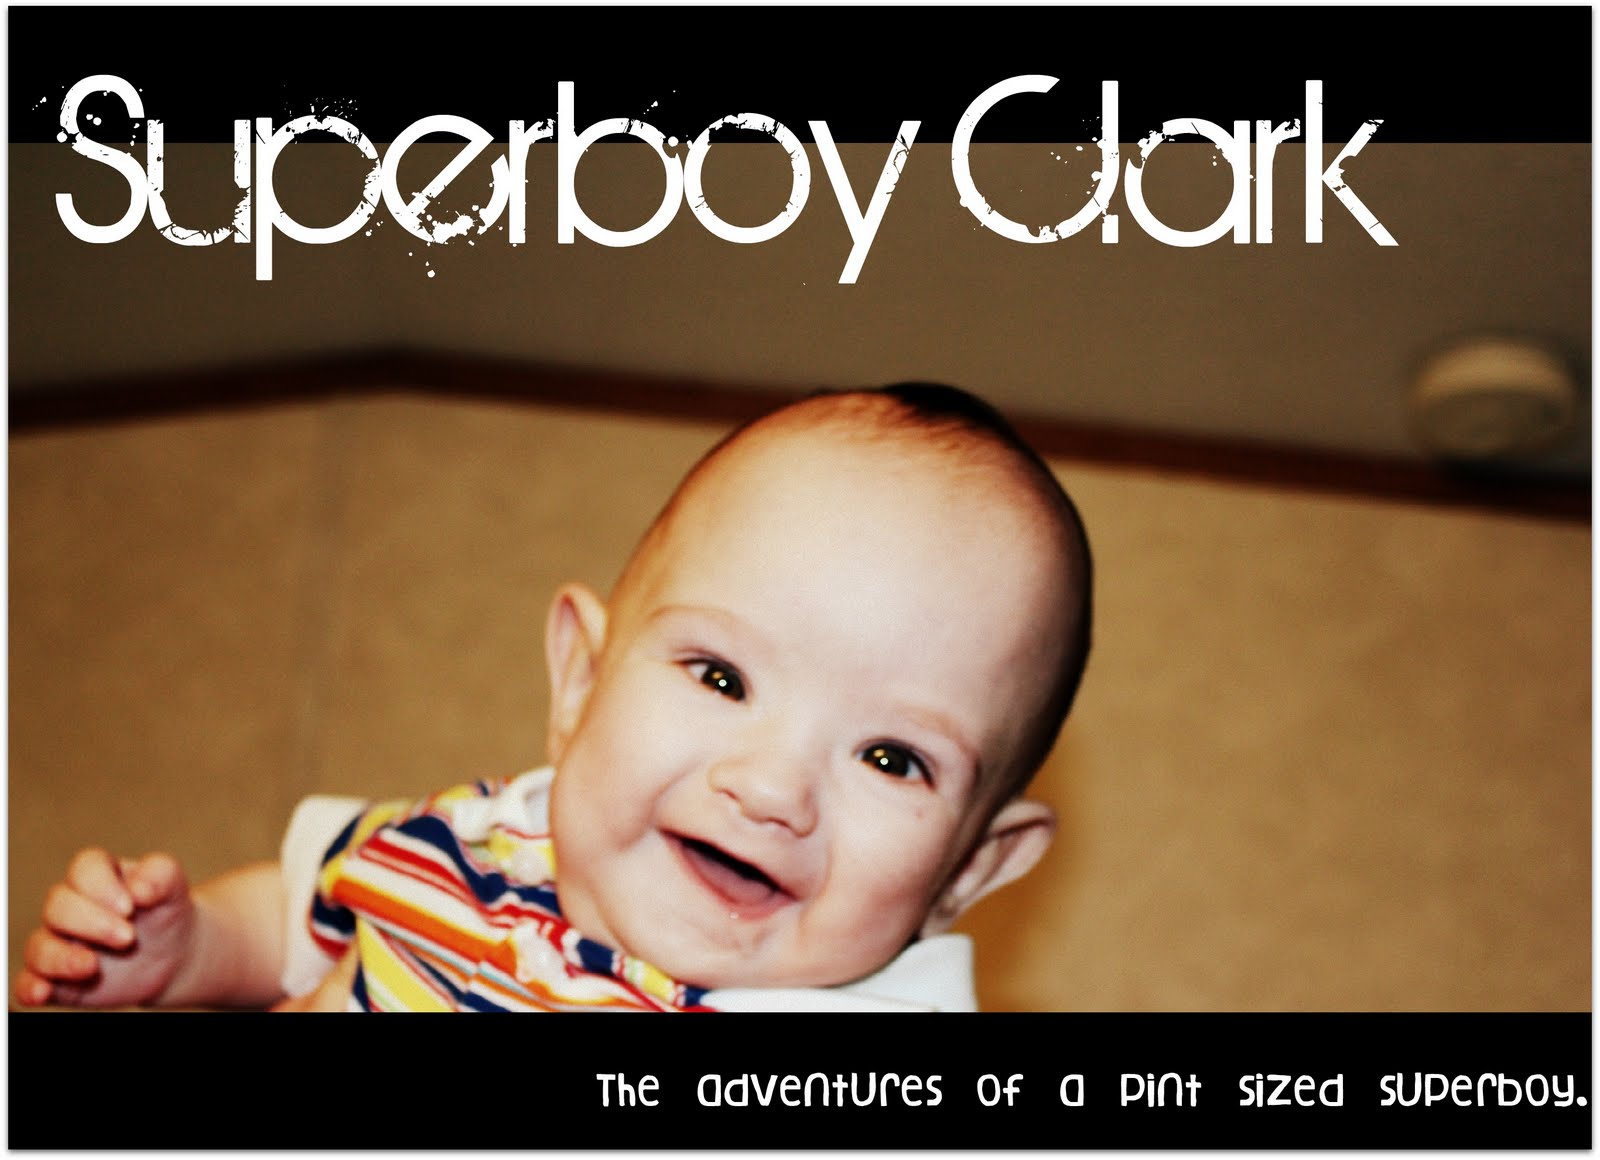 Superboy Clark